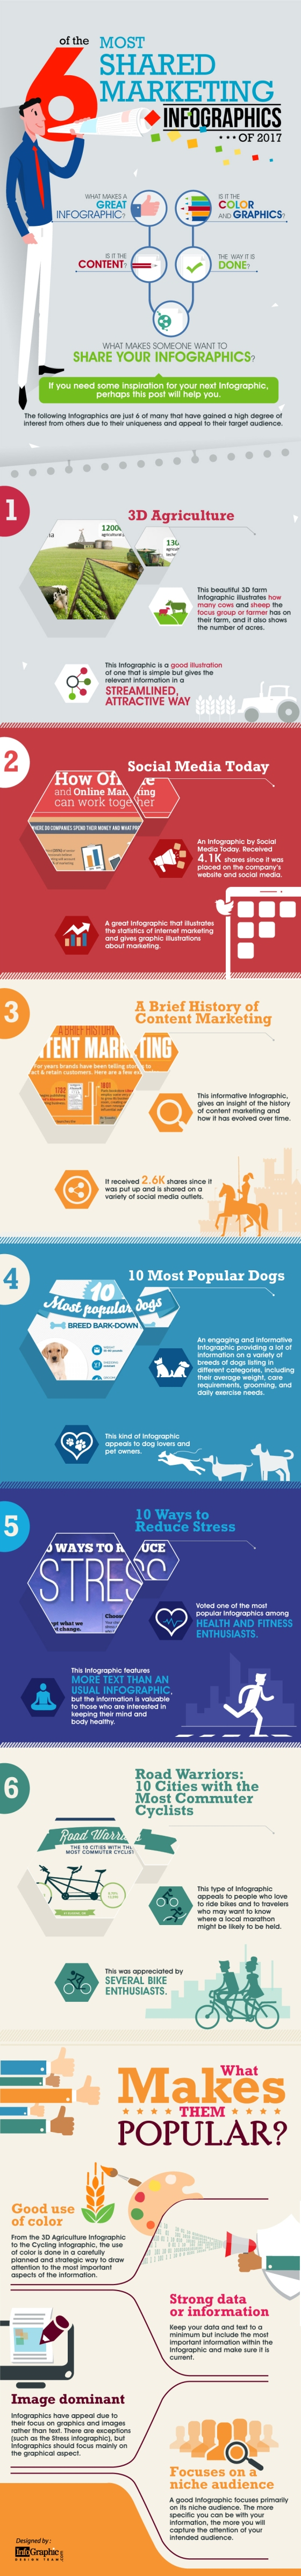 6 of the Most Shared Marketing Infographics of 2017